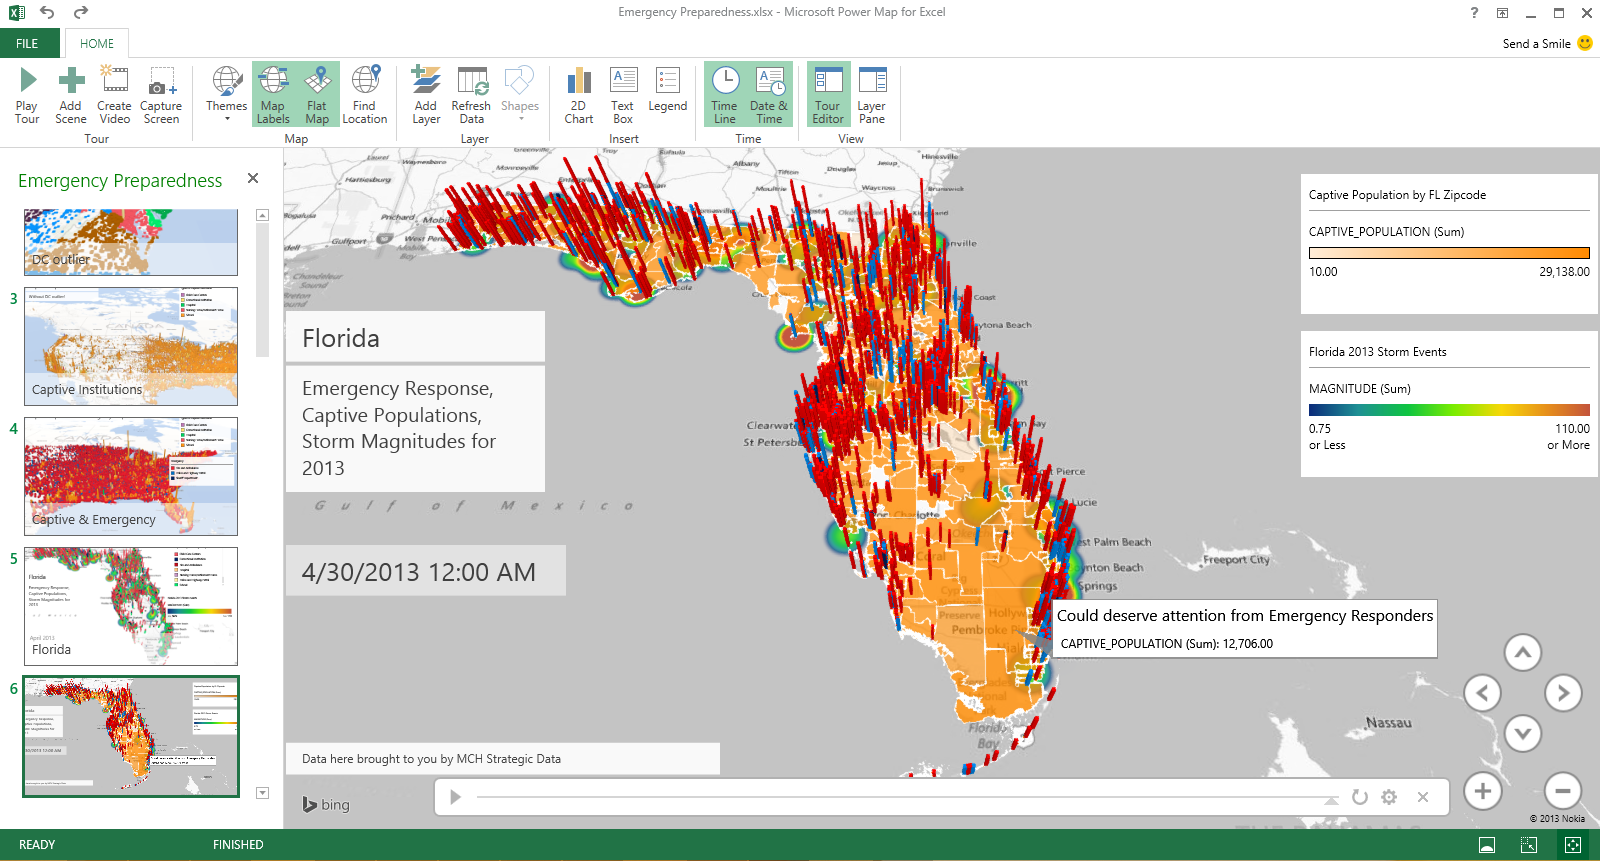 Ediblewildsus  Terrific Power Map For Excel Now Generally Available Automatically Updated  With Handsome Power Map For Excel Now Generally Available Automatically Updated For Office  With Beauteous Excel Disposal Also Excel How To Count Cells With Text In Addition Excel Random Selection From List And Removing Duplicate Rows In Excel As Well As Excel Theme Colors Additionally Excel Ranges From Powerbimicrosoftcom With Ediblewildsus  Handsome Power Map For Excel Now Generally Available Automatically Updated  With Beauteous Power Map For Excel Now Generally Available Automatically Updated For Office  And Terrific Excel Disposal Also Excel How To Count Cells With Text In Addition Excel Random Selection From List From Powerbimicrosoftcom